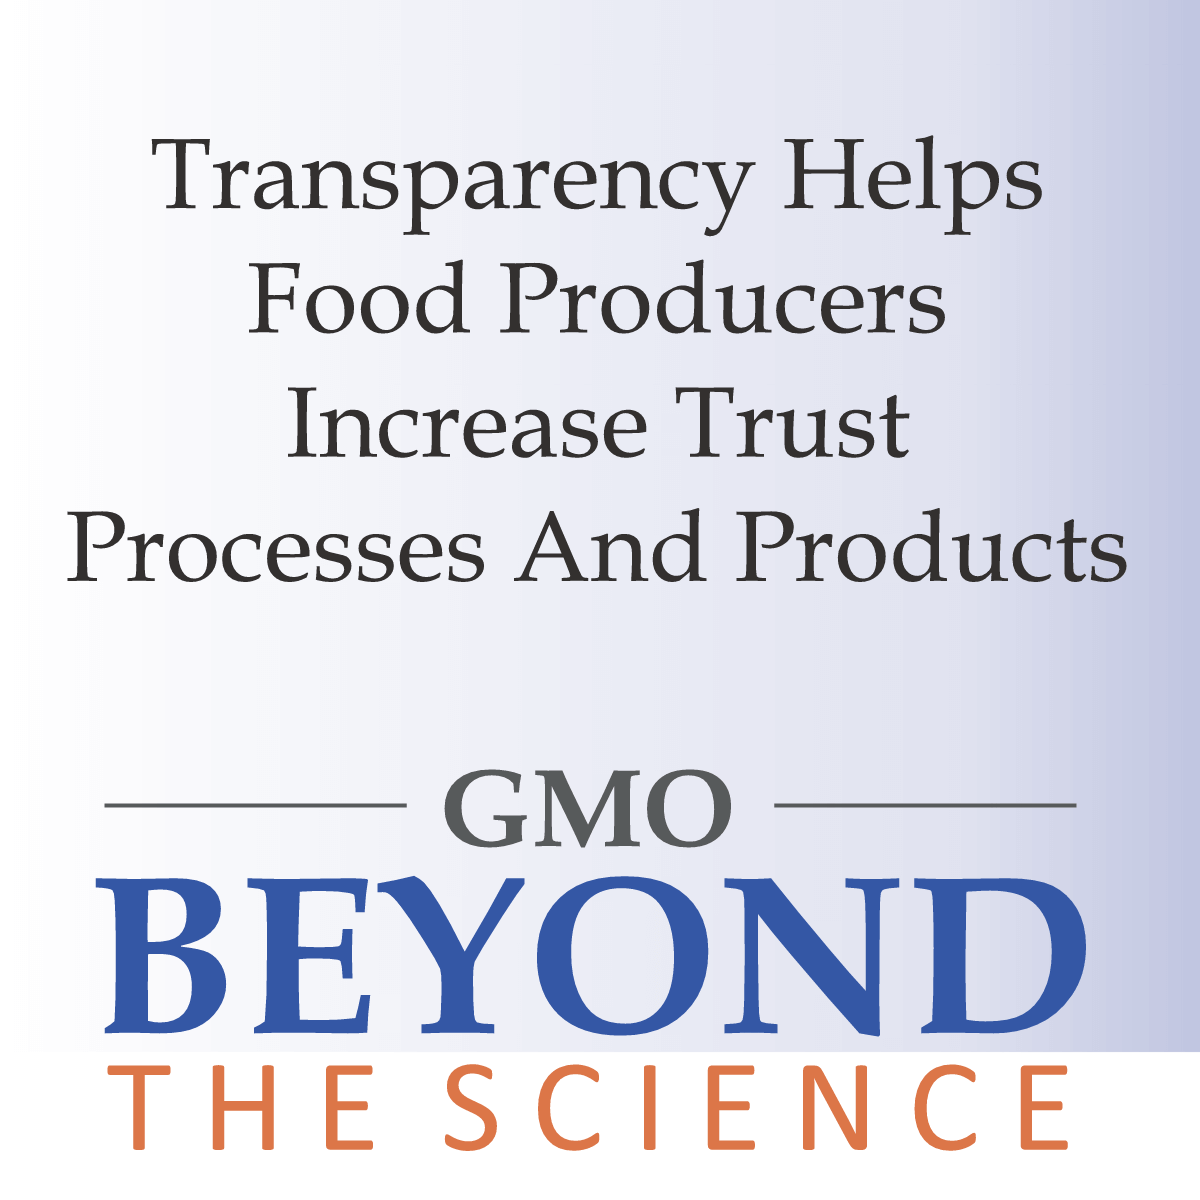 Transparency Helps Food Producers Increase Trust Processes And Products